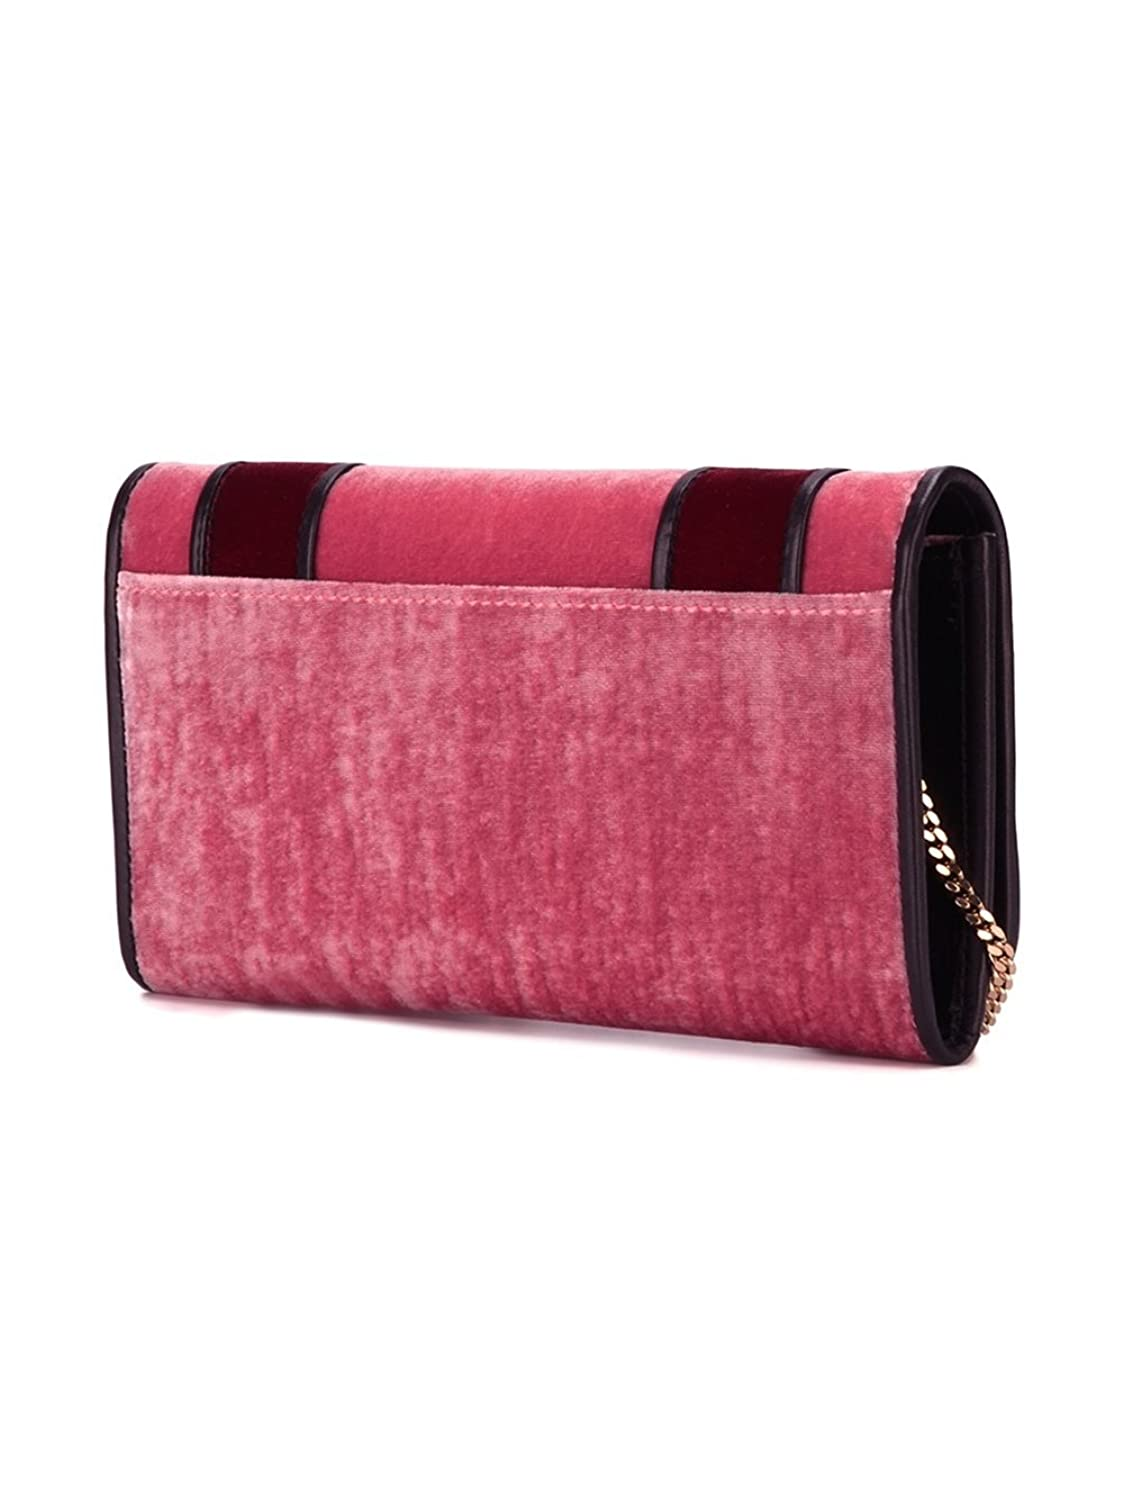 DSQUARED2 WOMEN'S W16CL200710709207 BURGUNDY VELVET CLUTCH